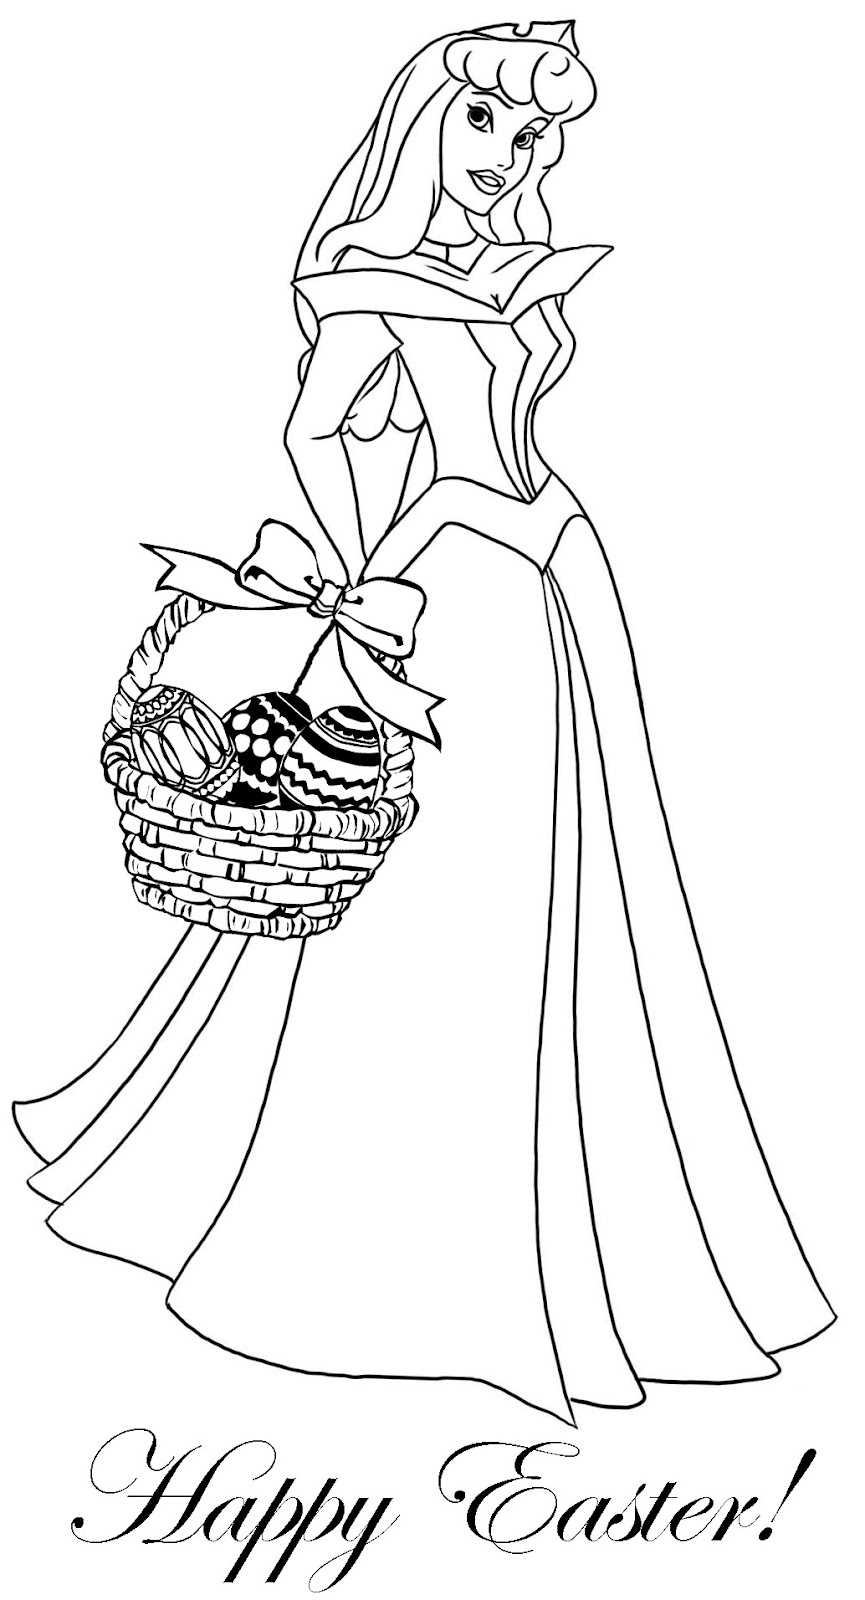 images of princess coloring pages disney princess coloring pages minister coloring coloring of images princess pages